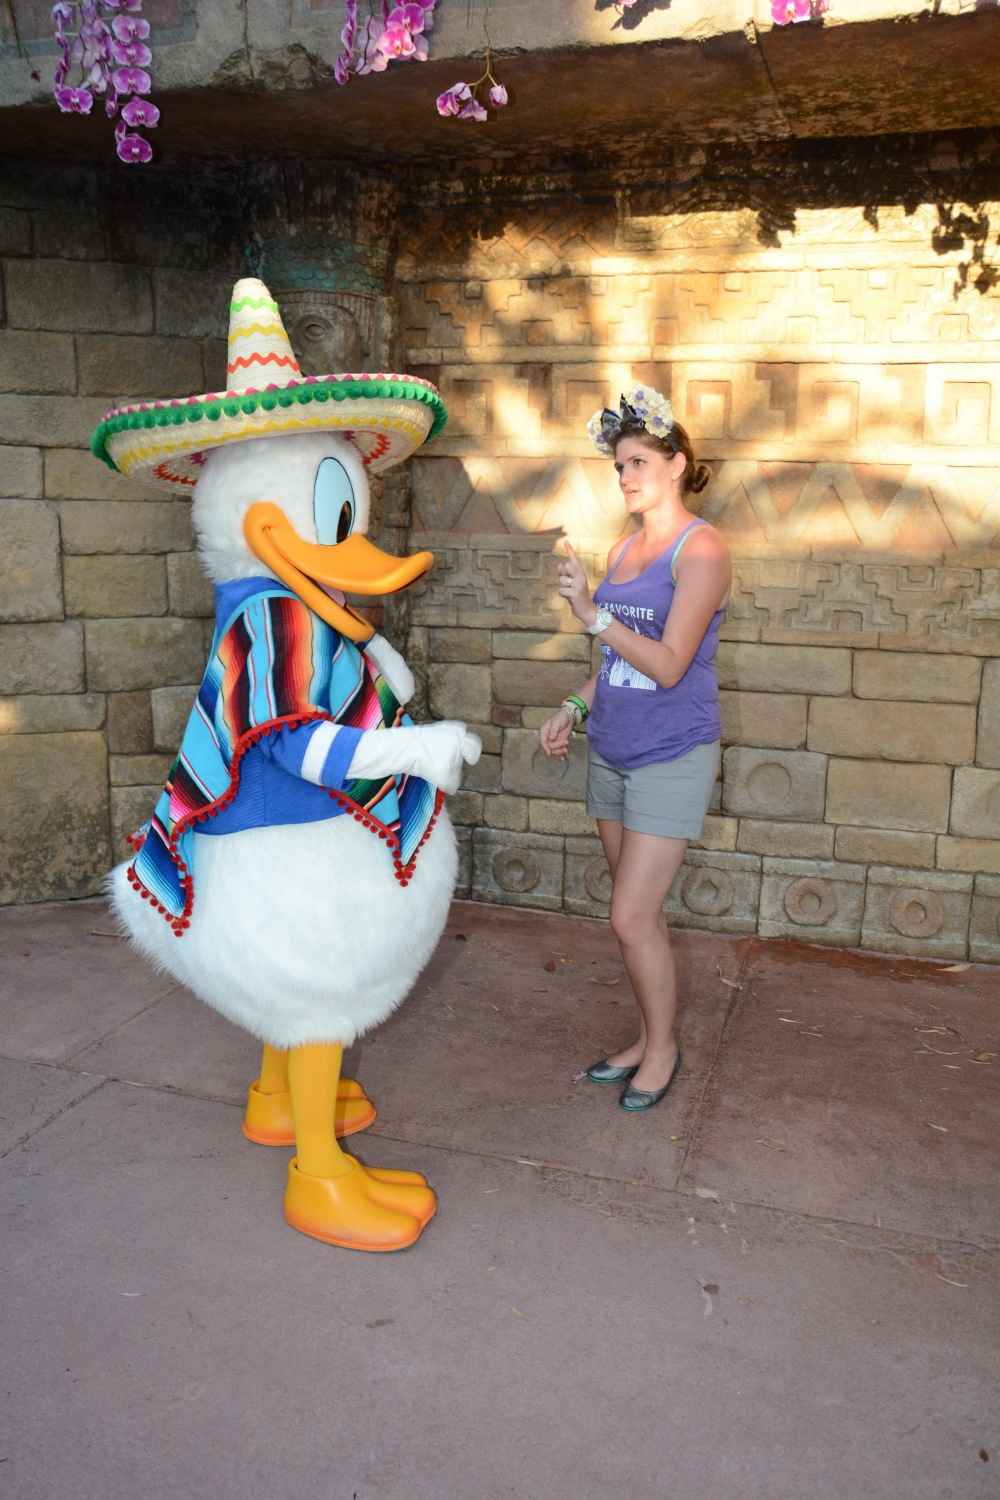 PhotoPass_Visiting_Epcot_7688573464